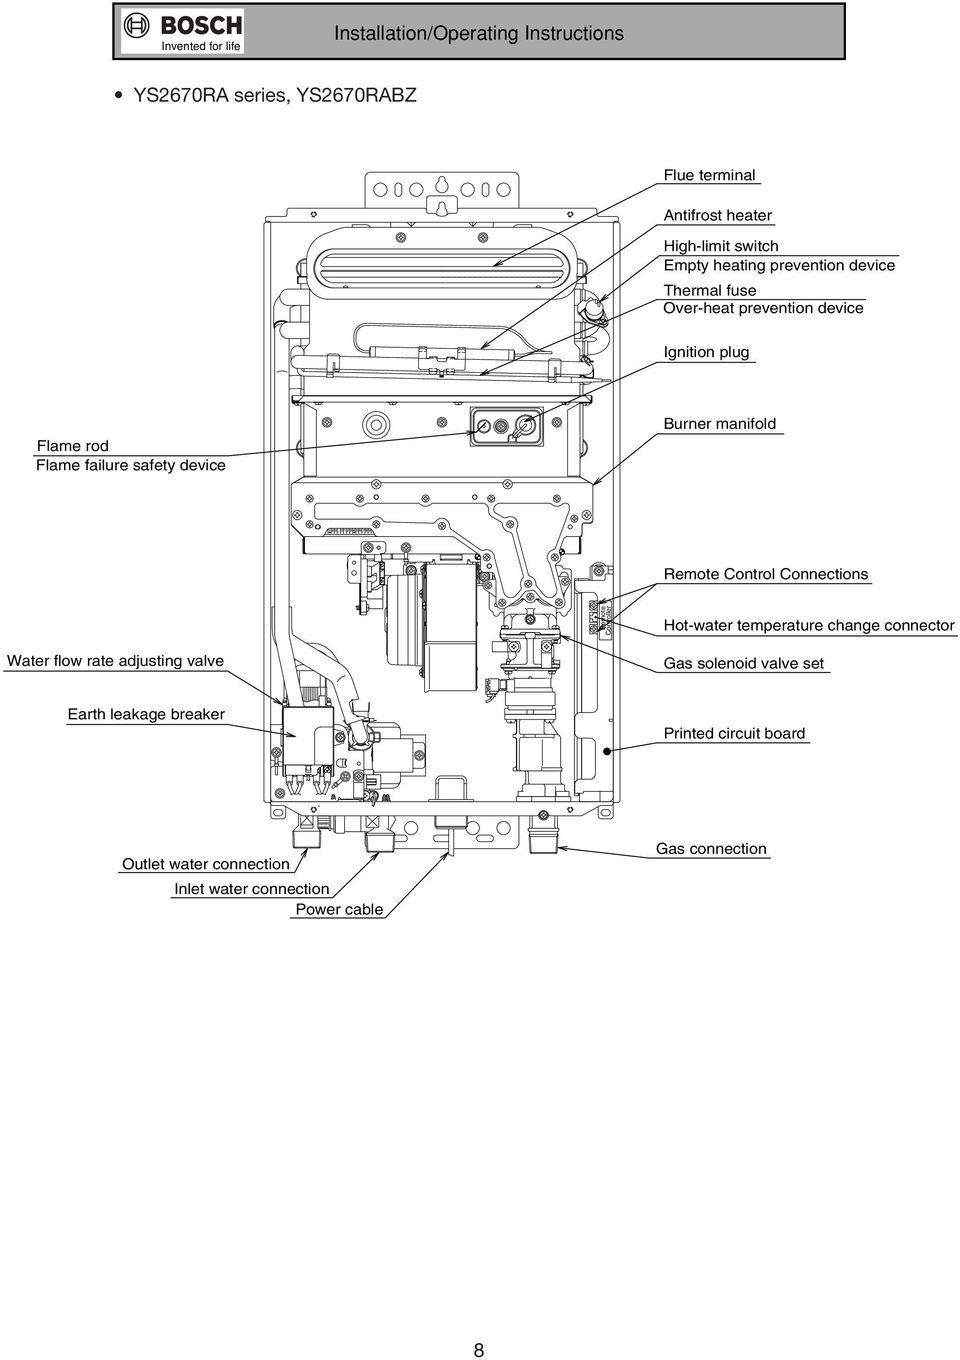 installation  operating instructions  models bosch 17e bosch 21e bosch 25e bosch 26e installation